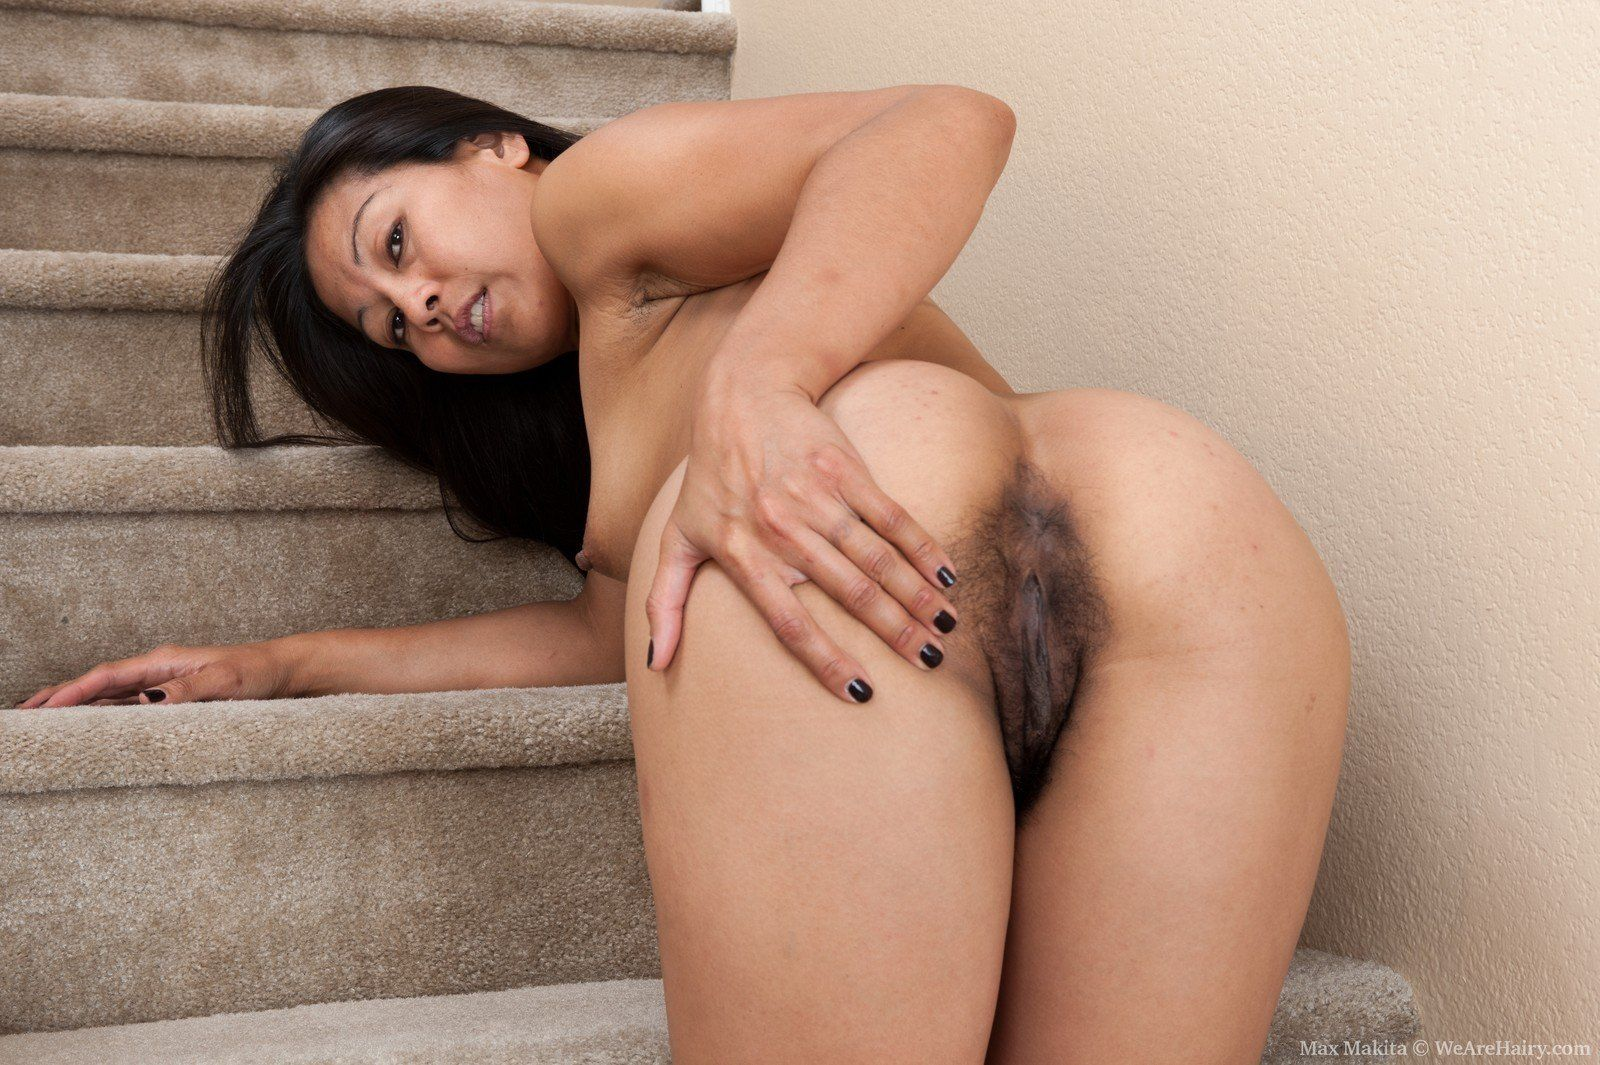 Mpeg hunter slut hairy